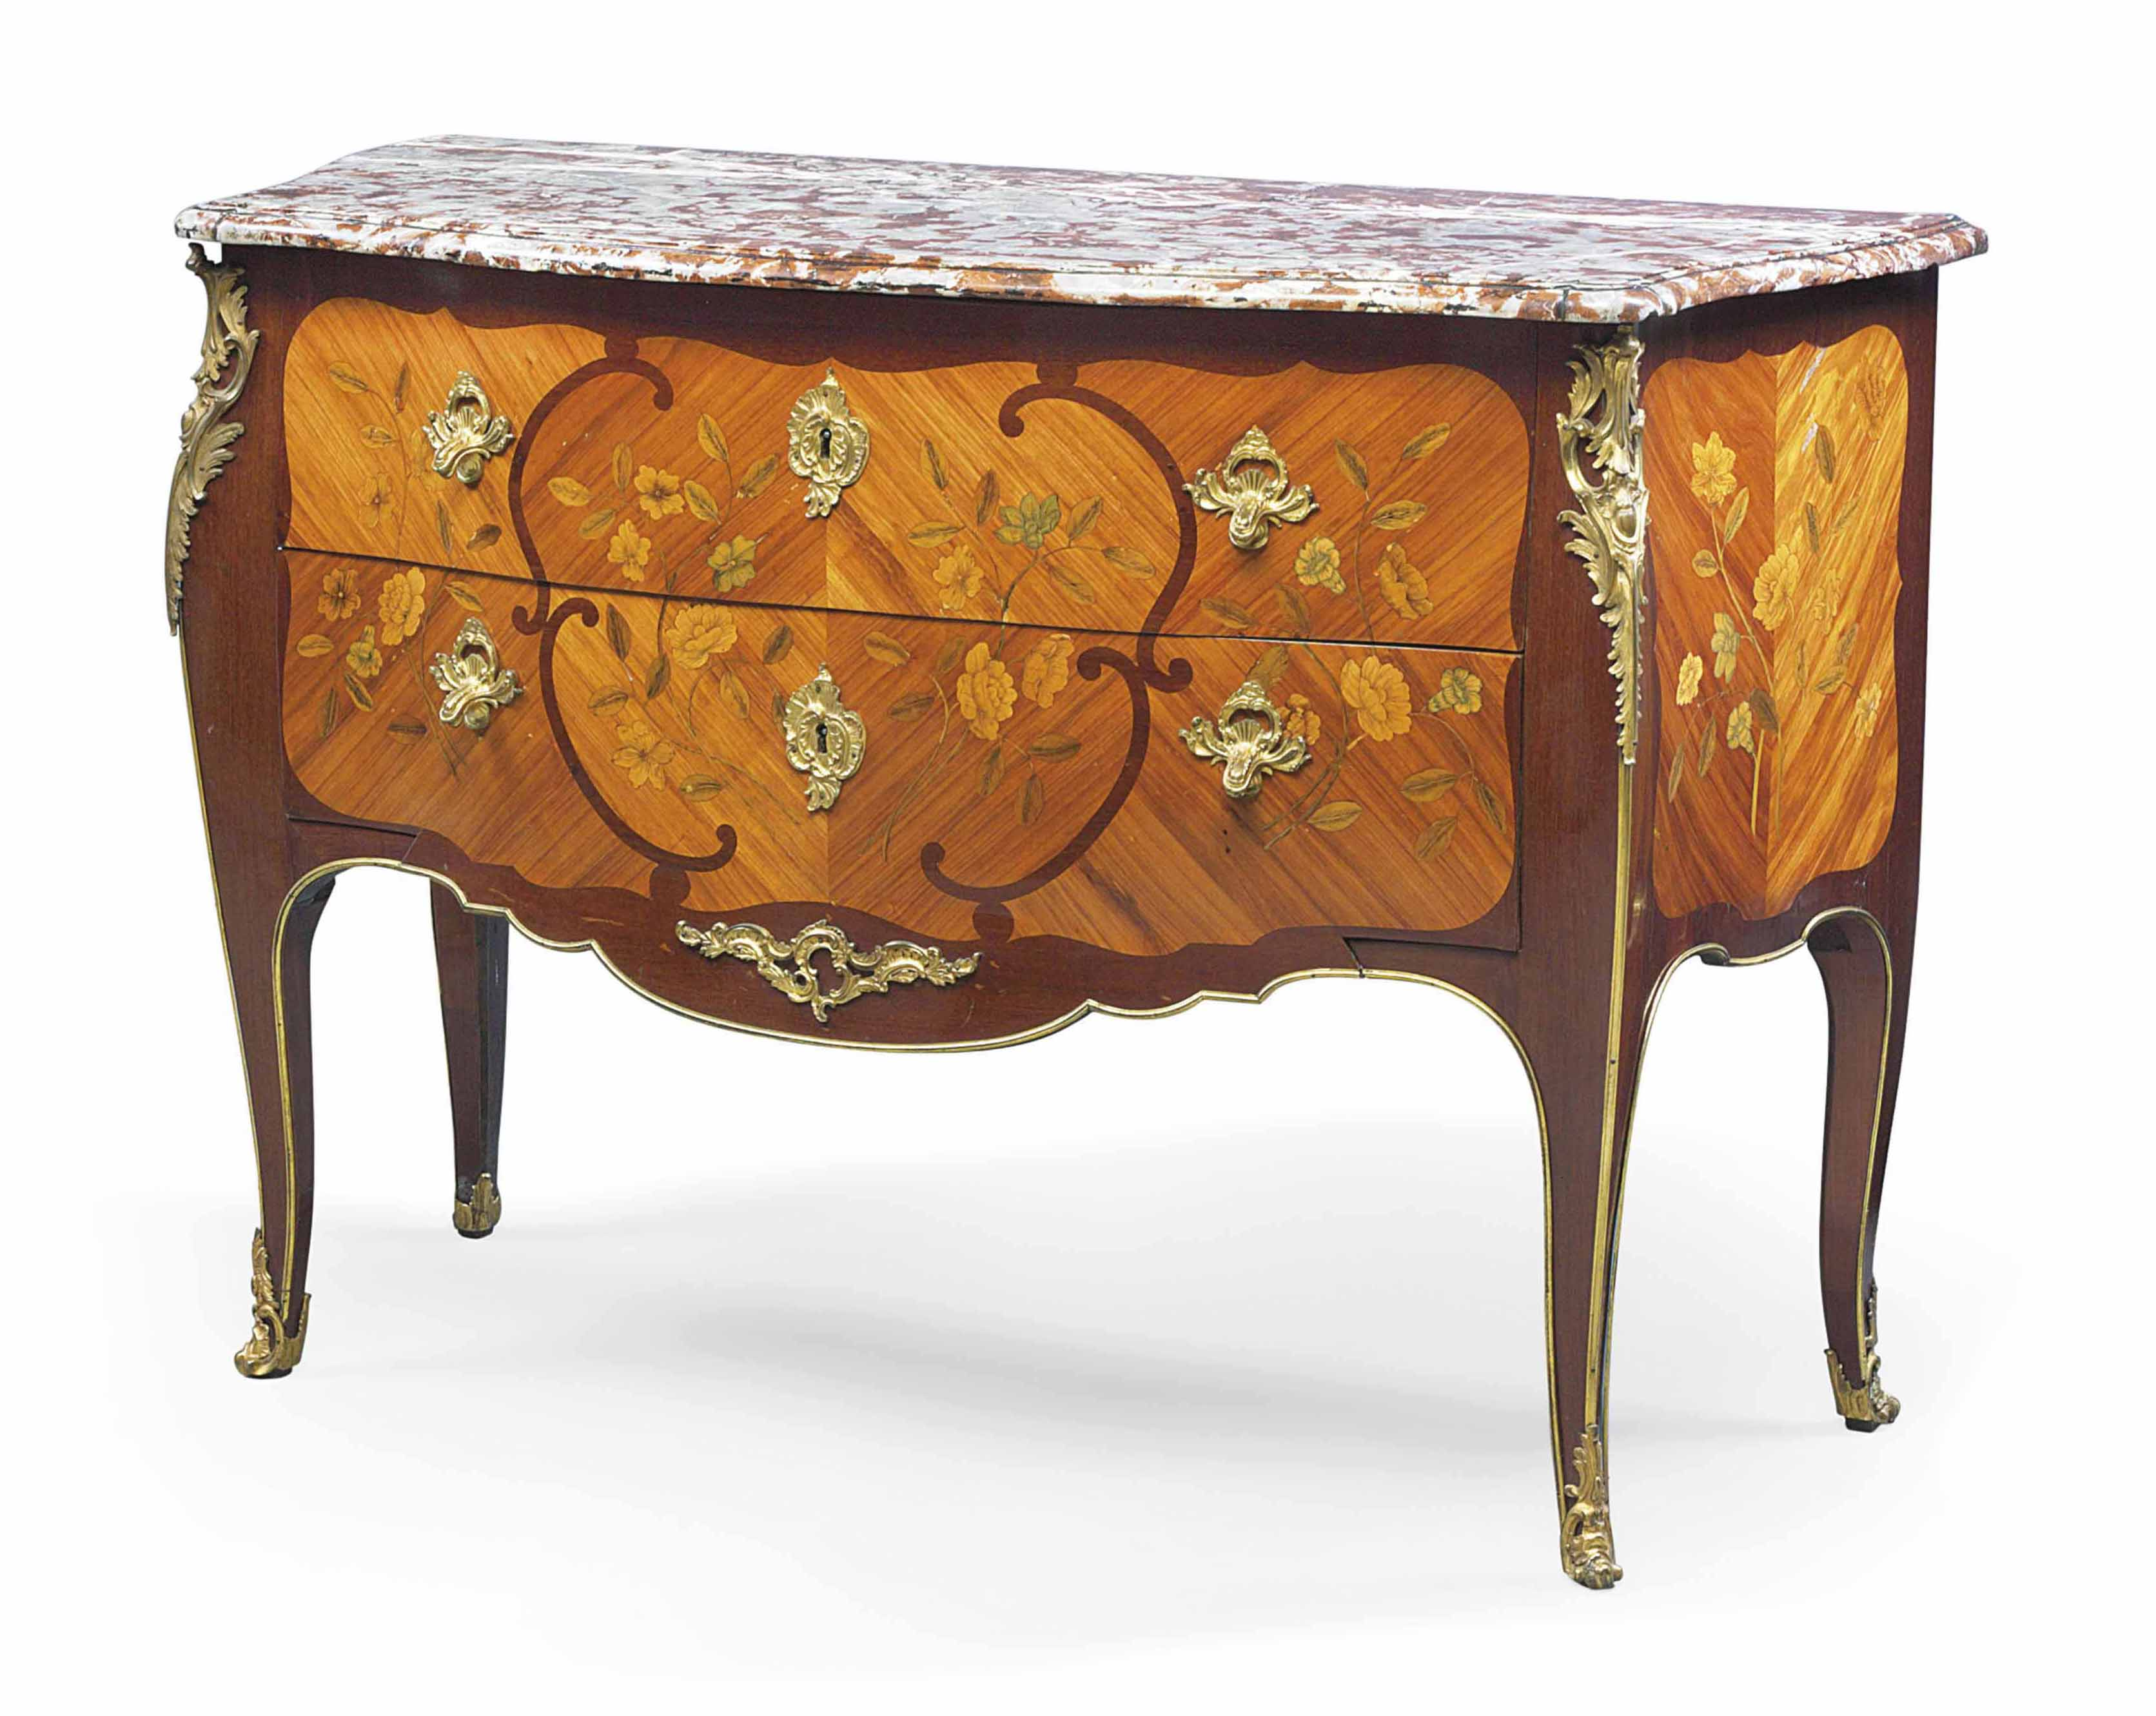 A LOUIS XV ORMOLU-MOUNTED AMARANTH, TULIPWOOD AND FLORAL MARQUETRY COMMODE